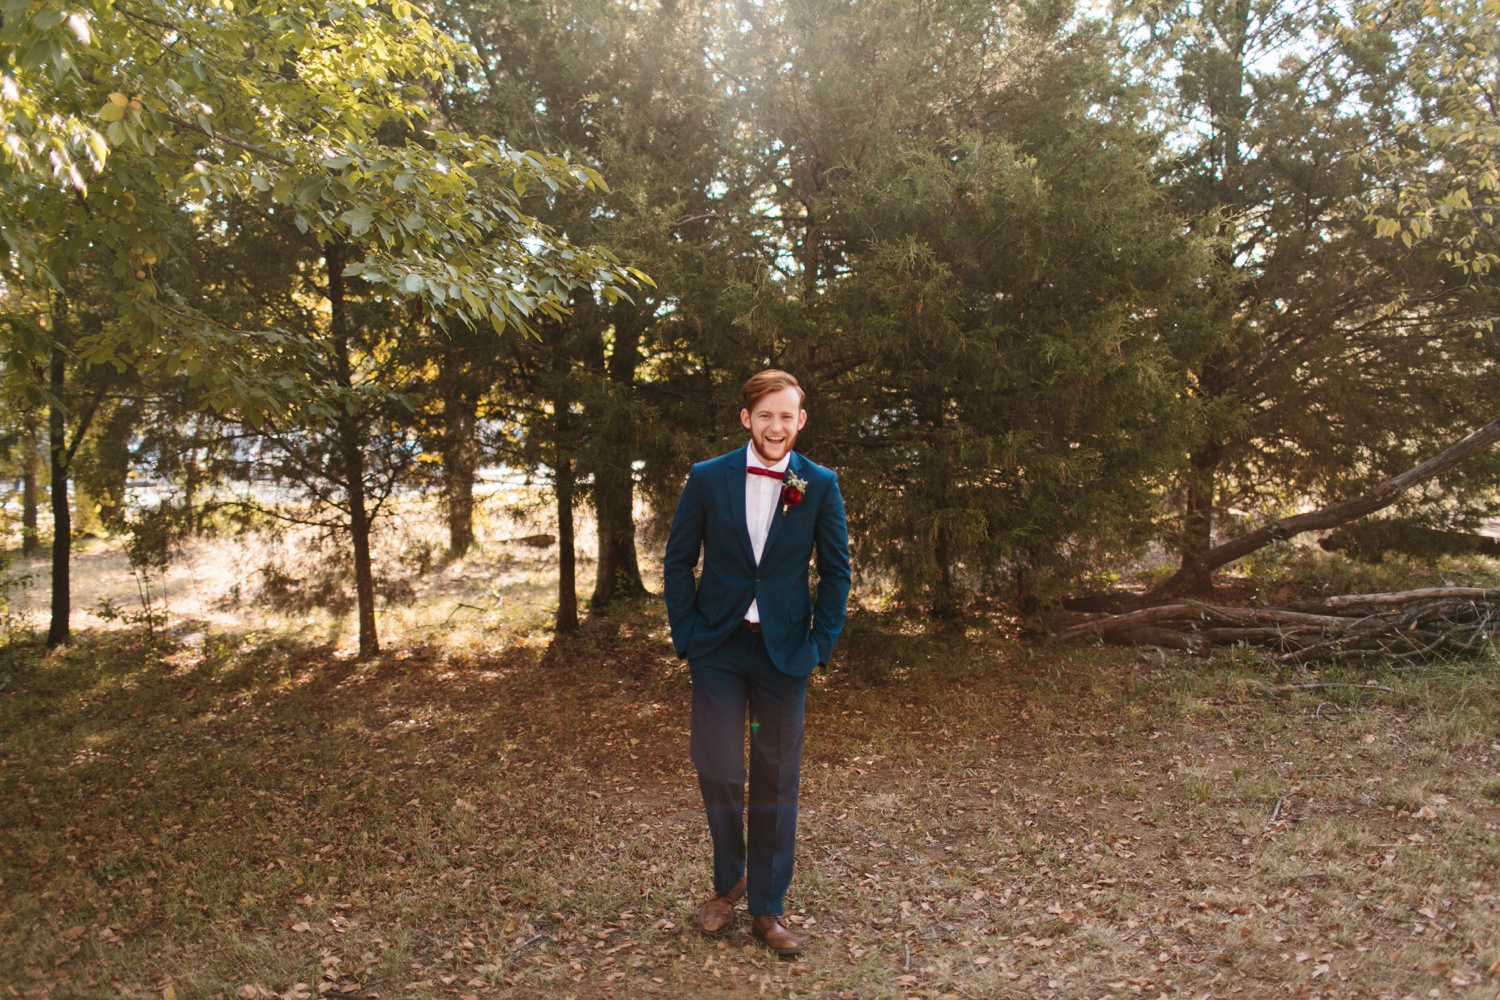 Grant + Lysette | a vibrant, deep burgundy and navy, and mixed metals wedding at Hidden Pines Chapel by North Texas Wedding Photographer Rachel Meagan Photography 031